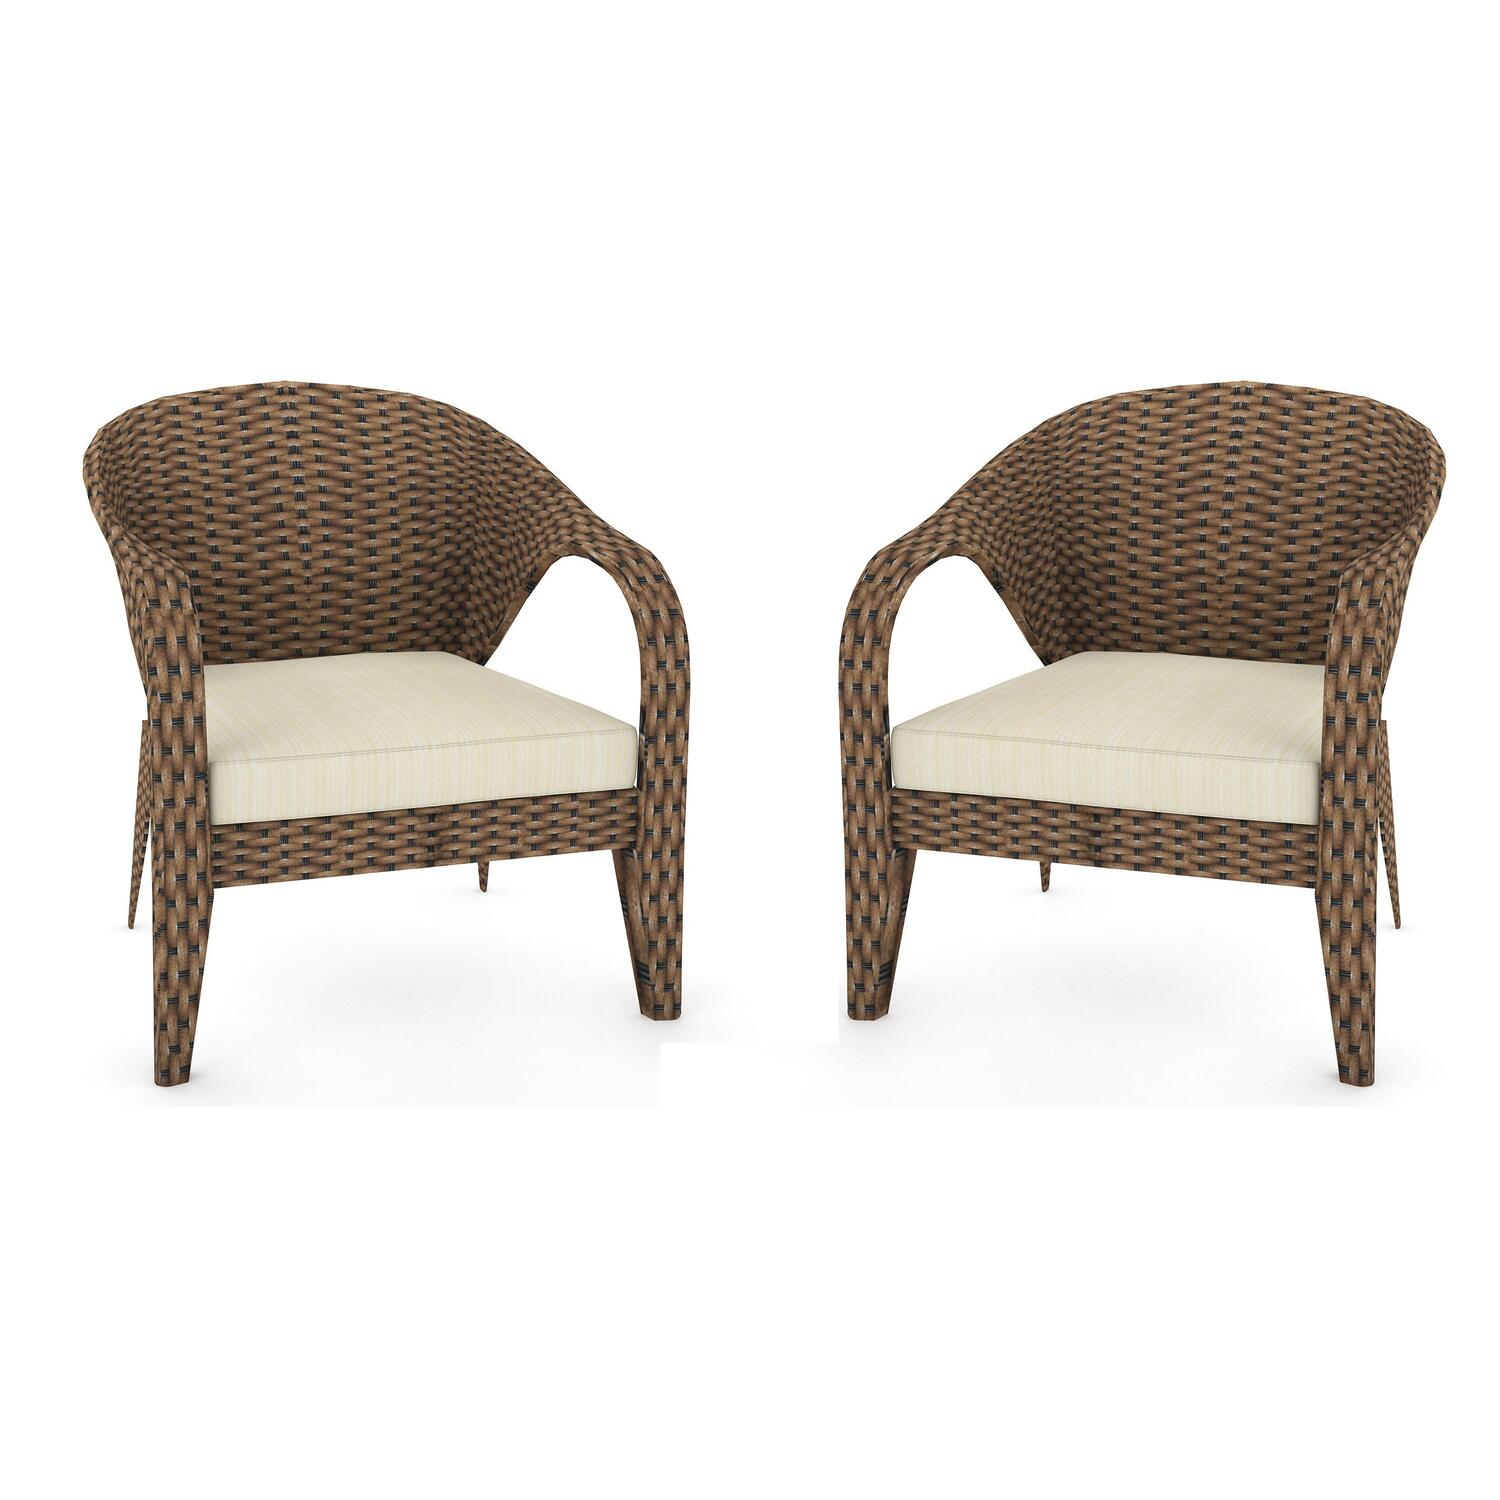 Sonax Harrison Patio Chairs by OJ merce C 206 SHP $995 99